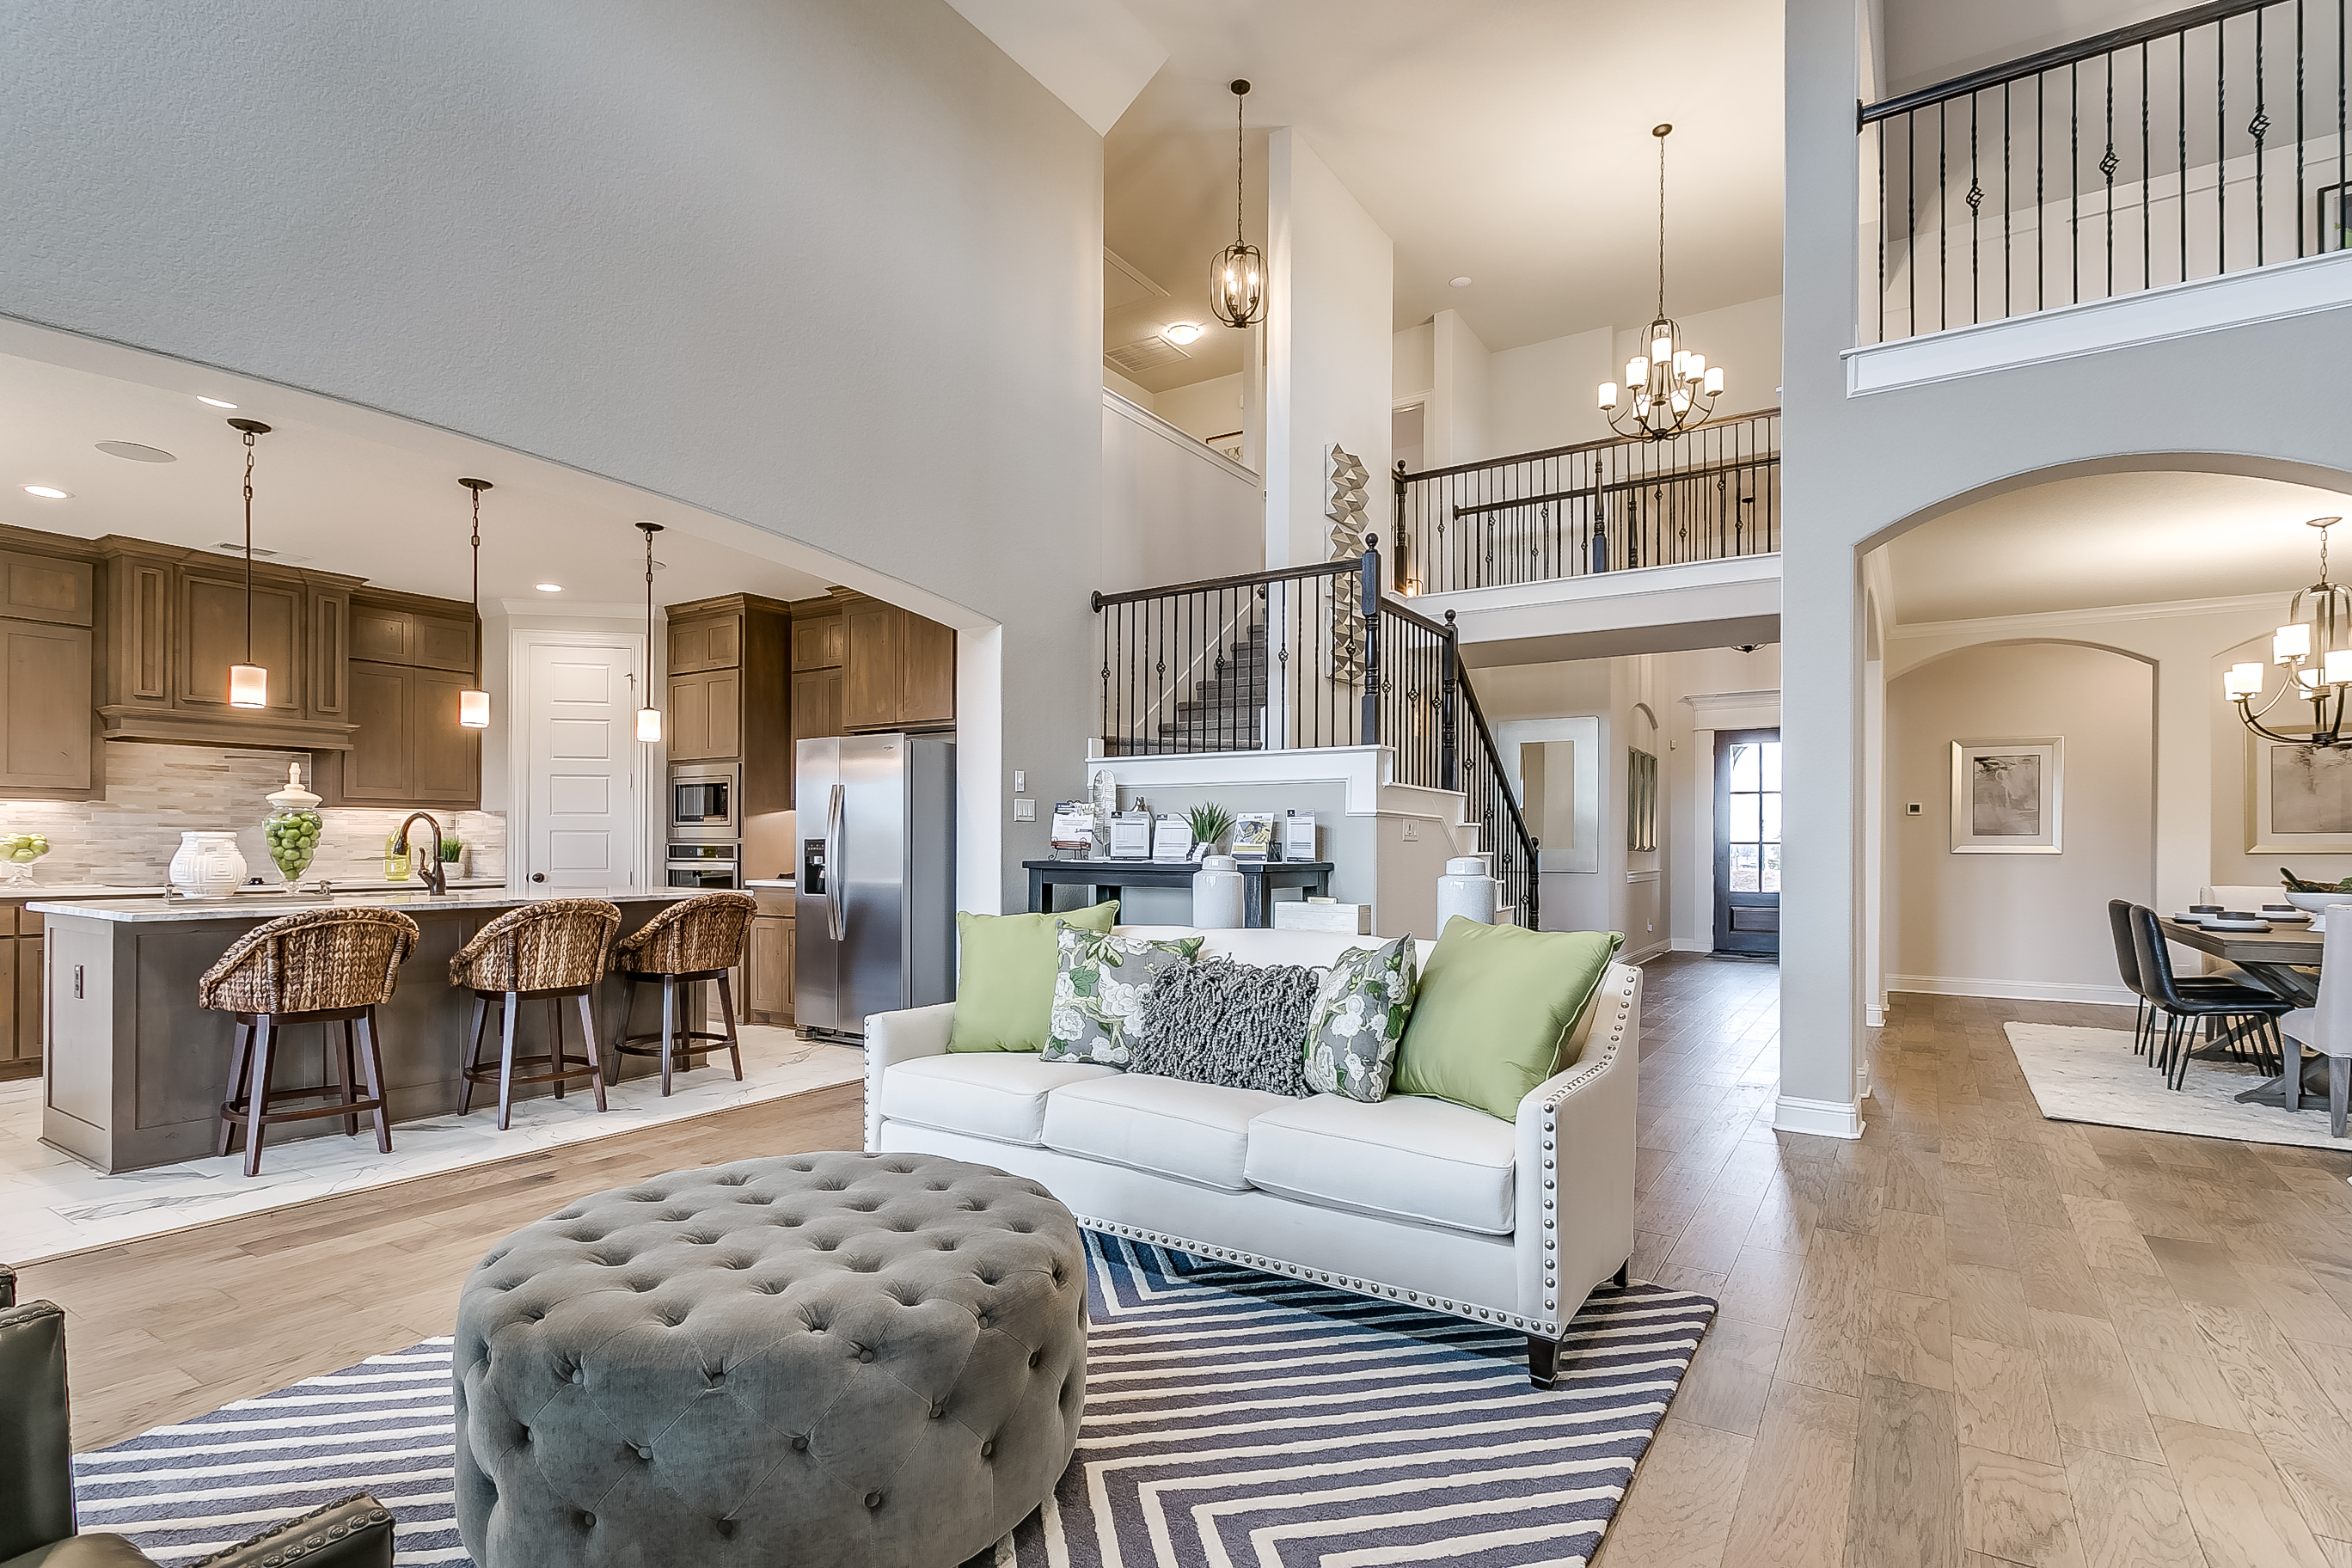 NEW MODEL HOME: Estates at North Grove in Waxahachie, TX